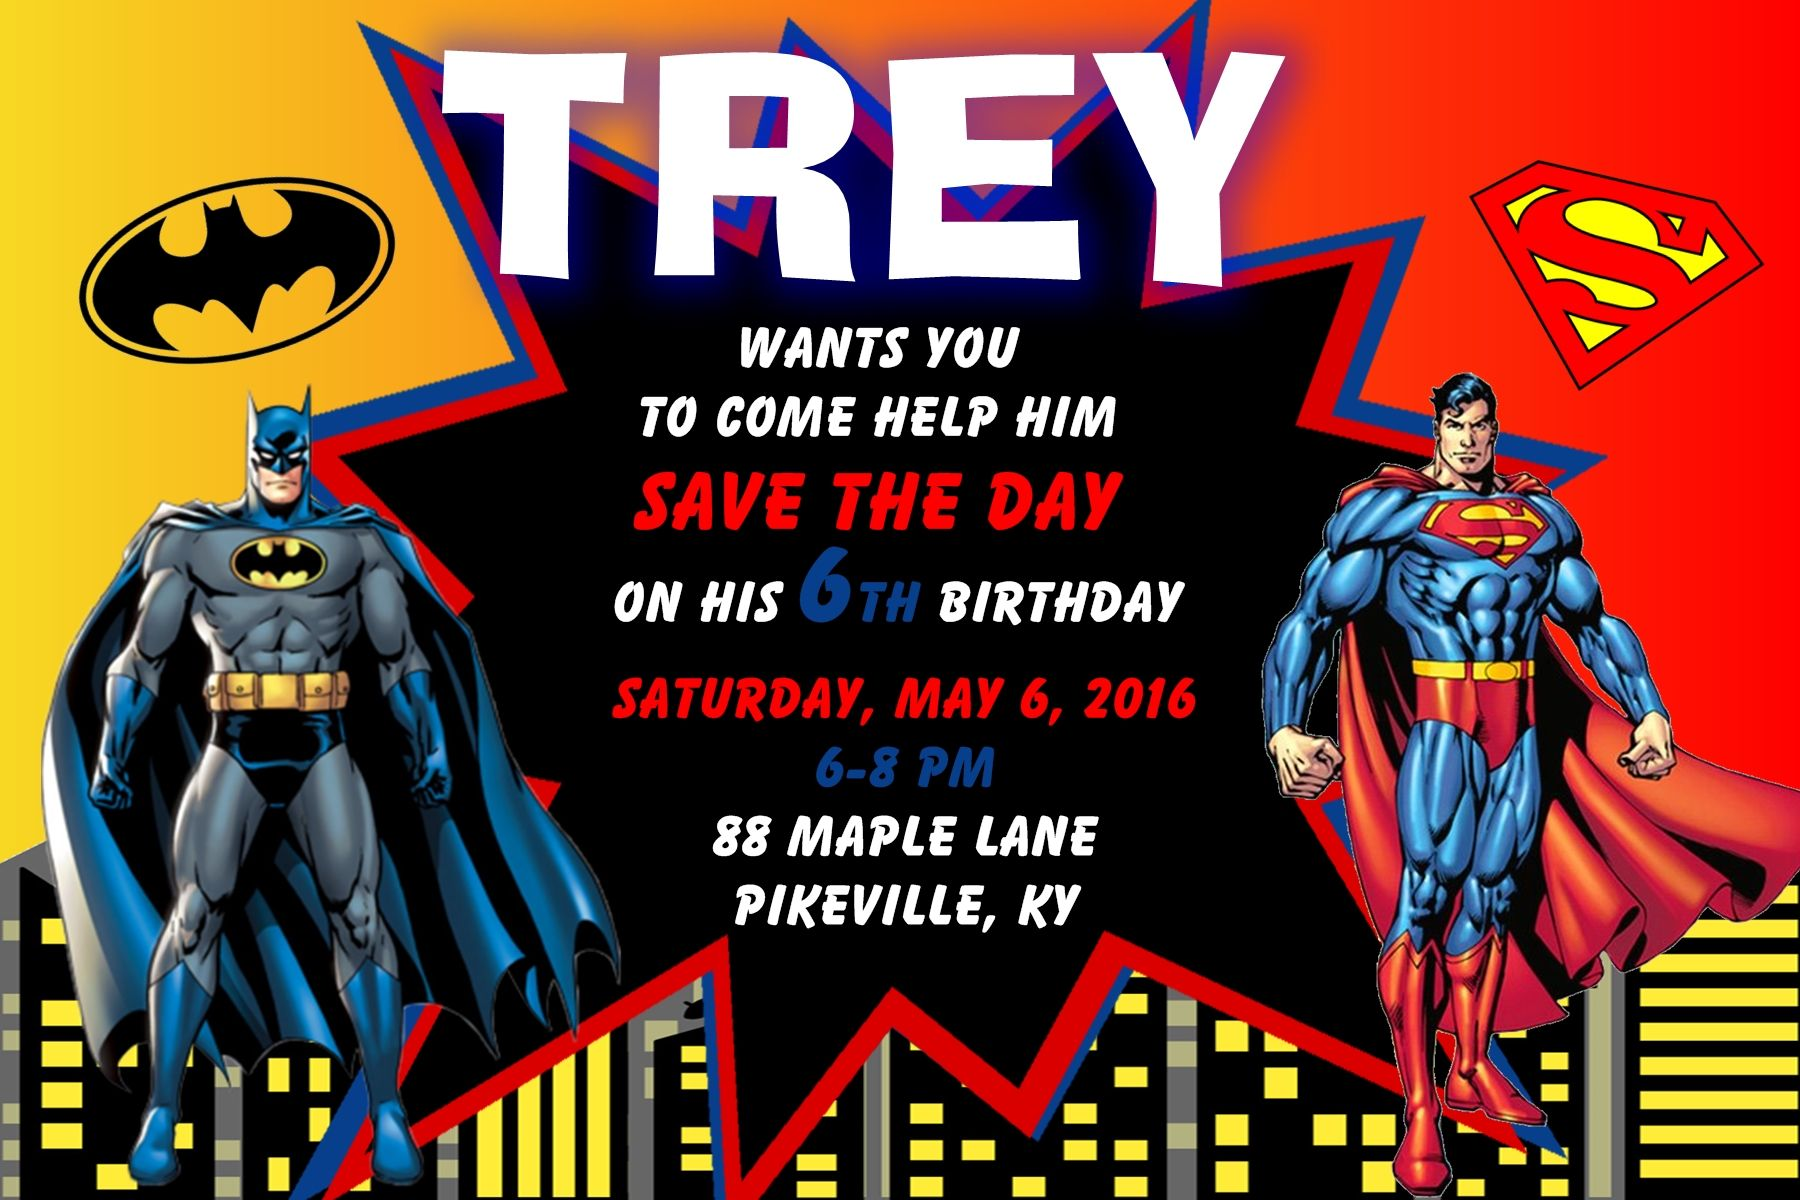 4x6 batman and superman birthday invitation contact me via email at 4x6 batman and superman birthday invitation contact me via email at aswiney01yahoo stopboris